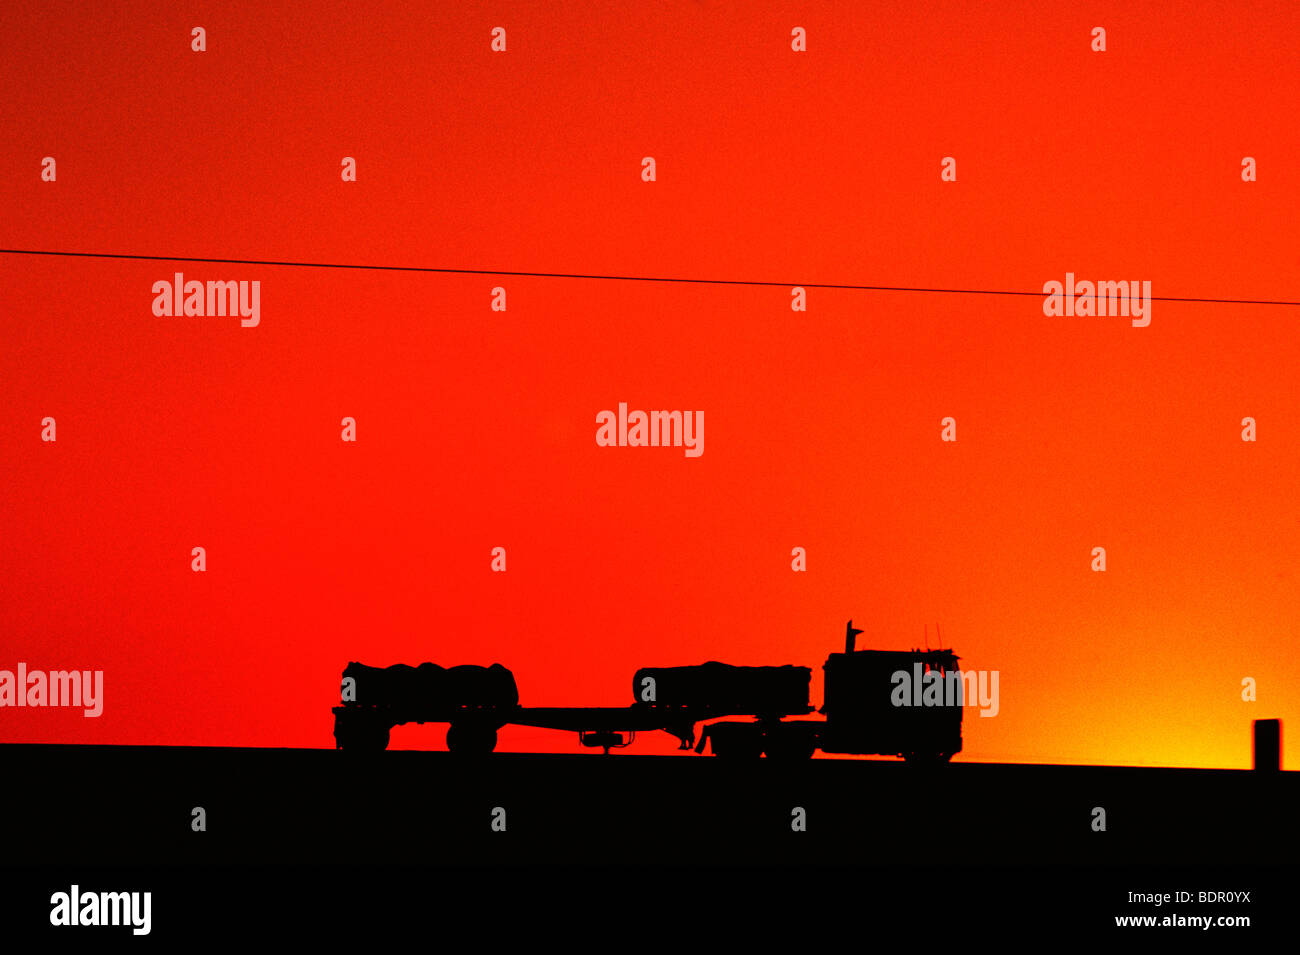 Trucking in Cetral California Valley - Stock Image